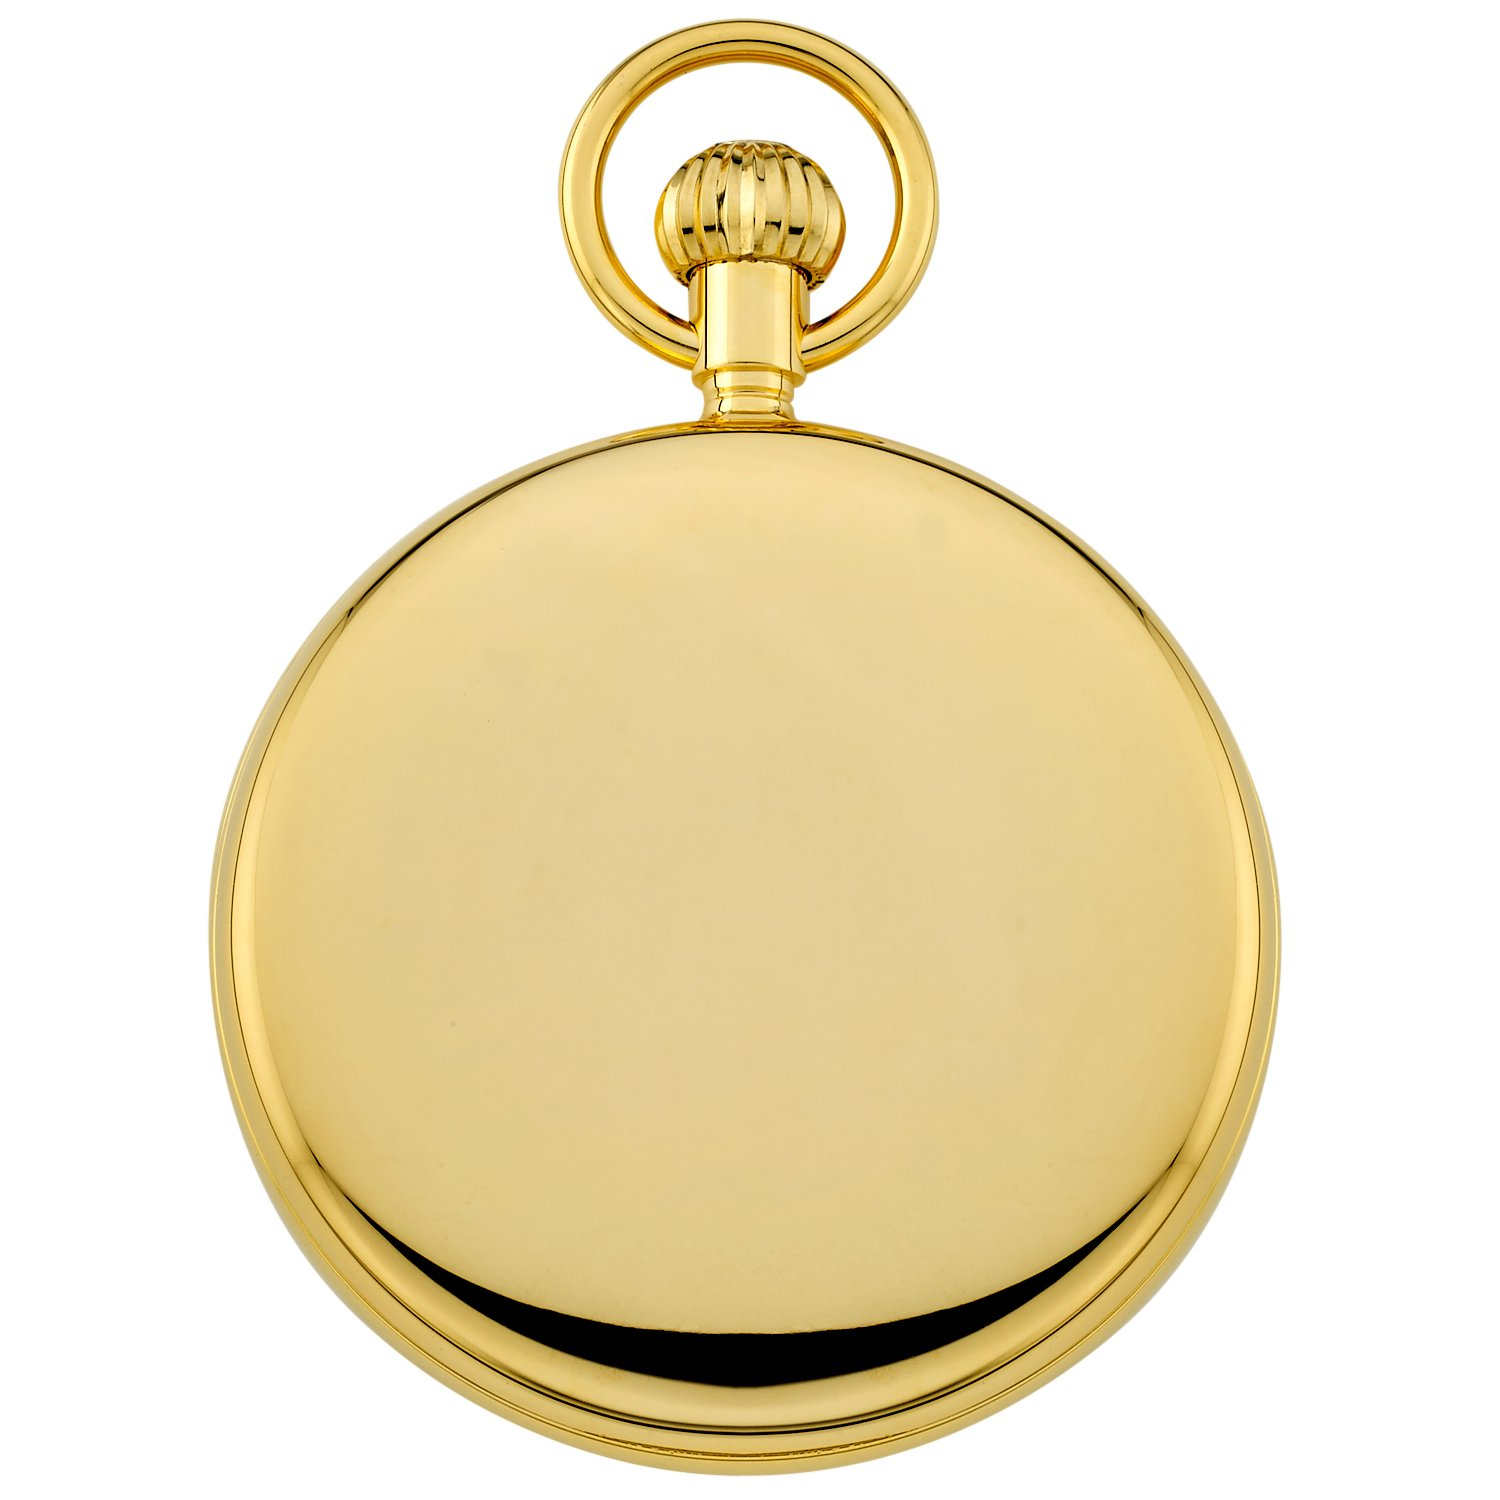 Gotham Men's Gold-Tone Mechanical Hand Wind Railroad Pocket Watch # GWC14104G by Gotham (Image #4)